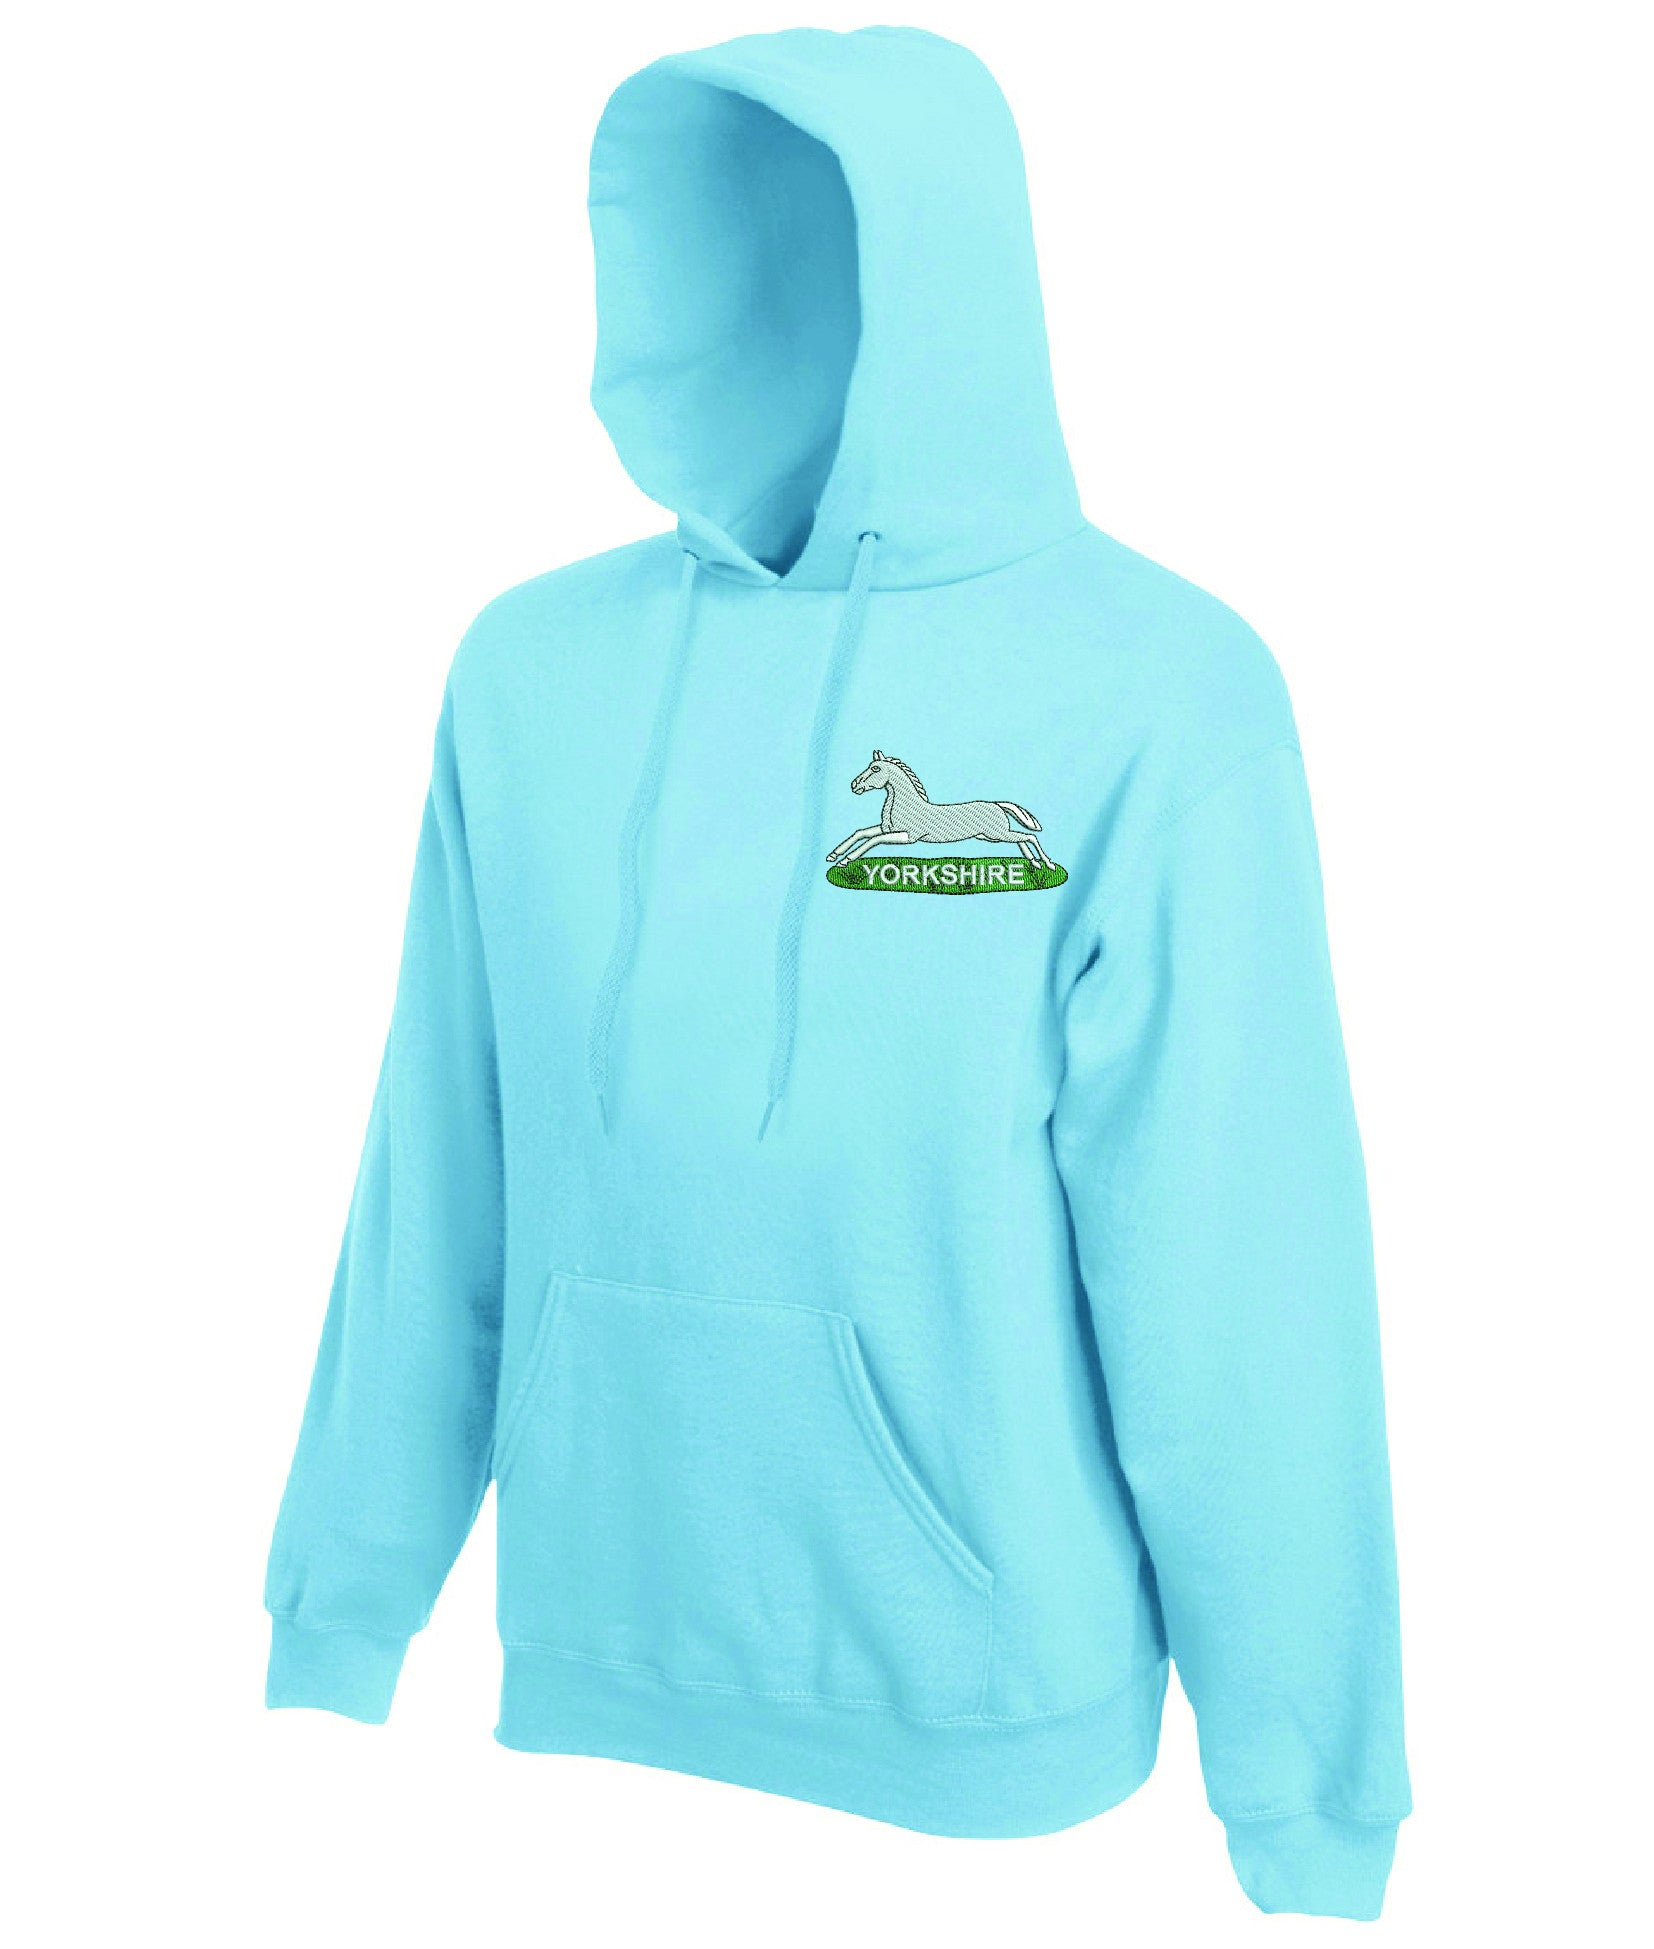 Prince of Wales's Own Regiment of Yorkshire Hoodie